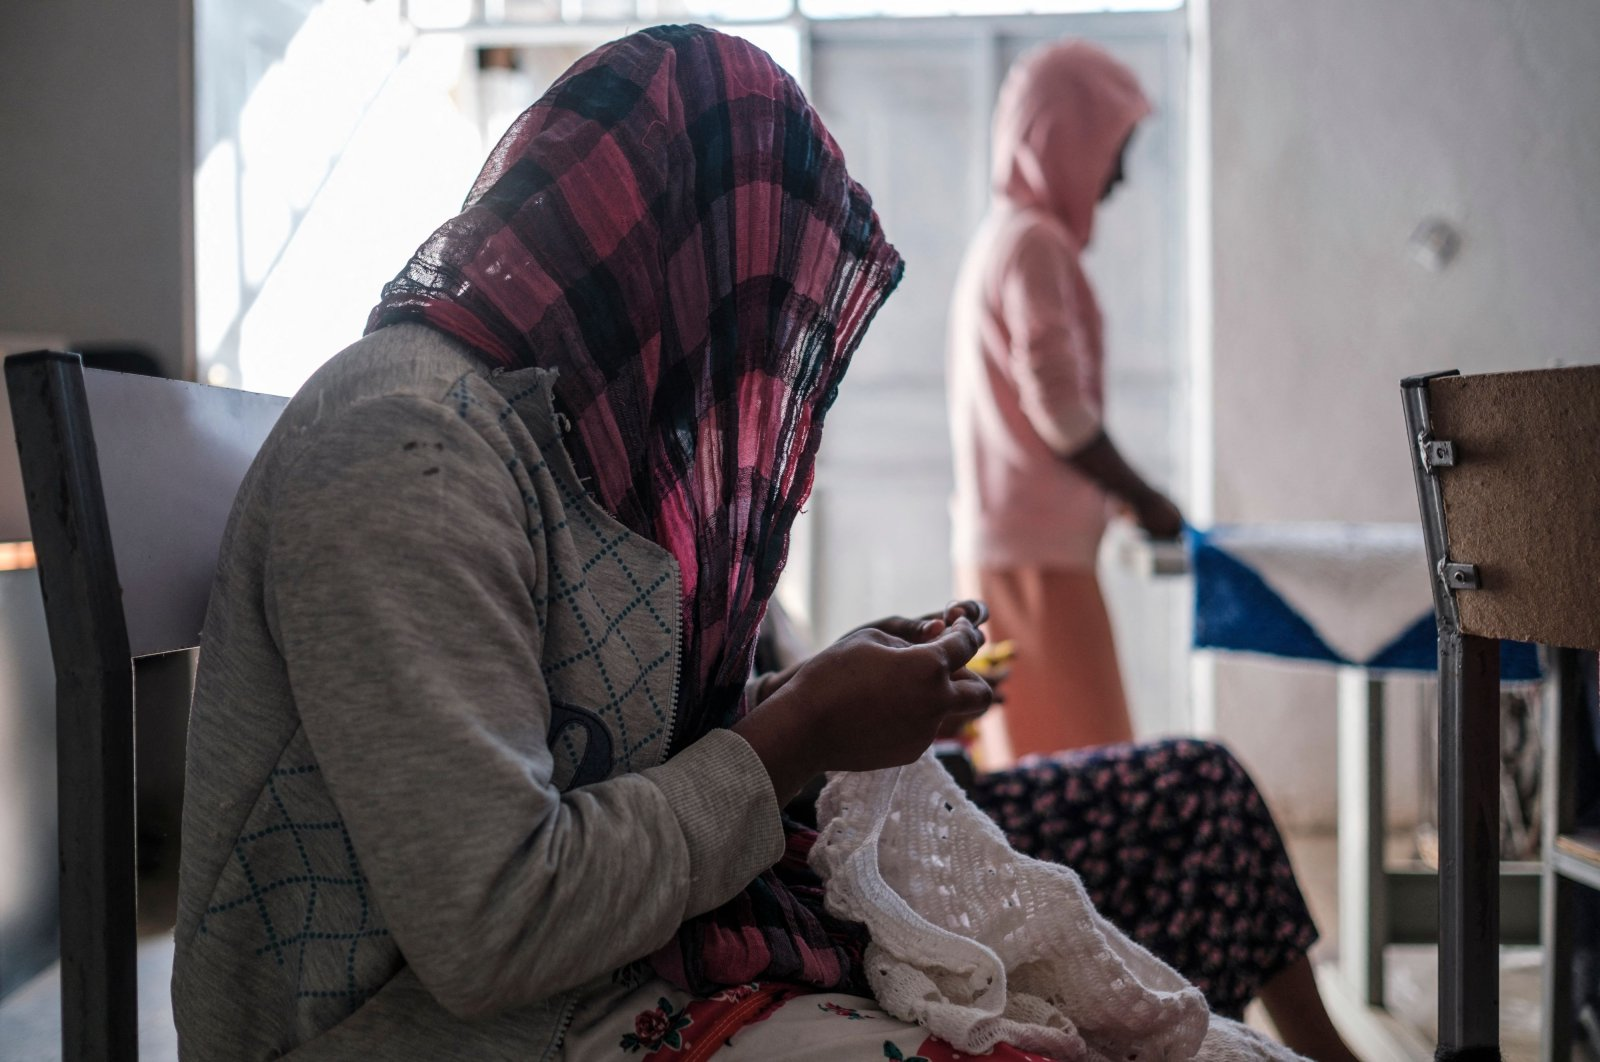 Survivors of sexual assault do handcrafts at a safe house in Mekele on Feb. 27, 2021. (AFP Photo)